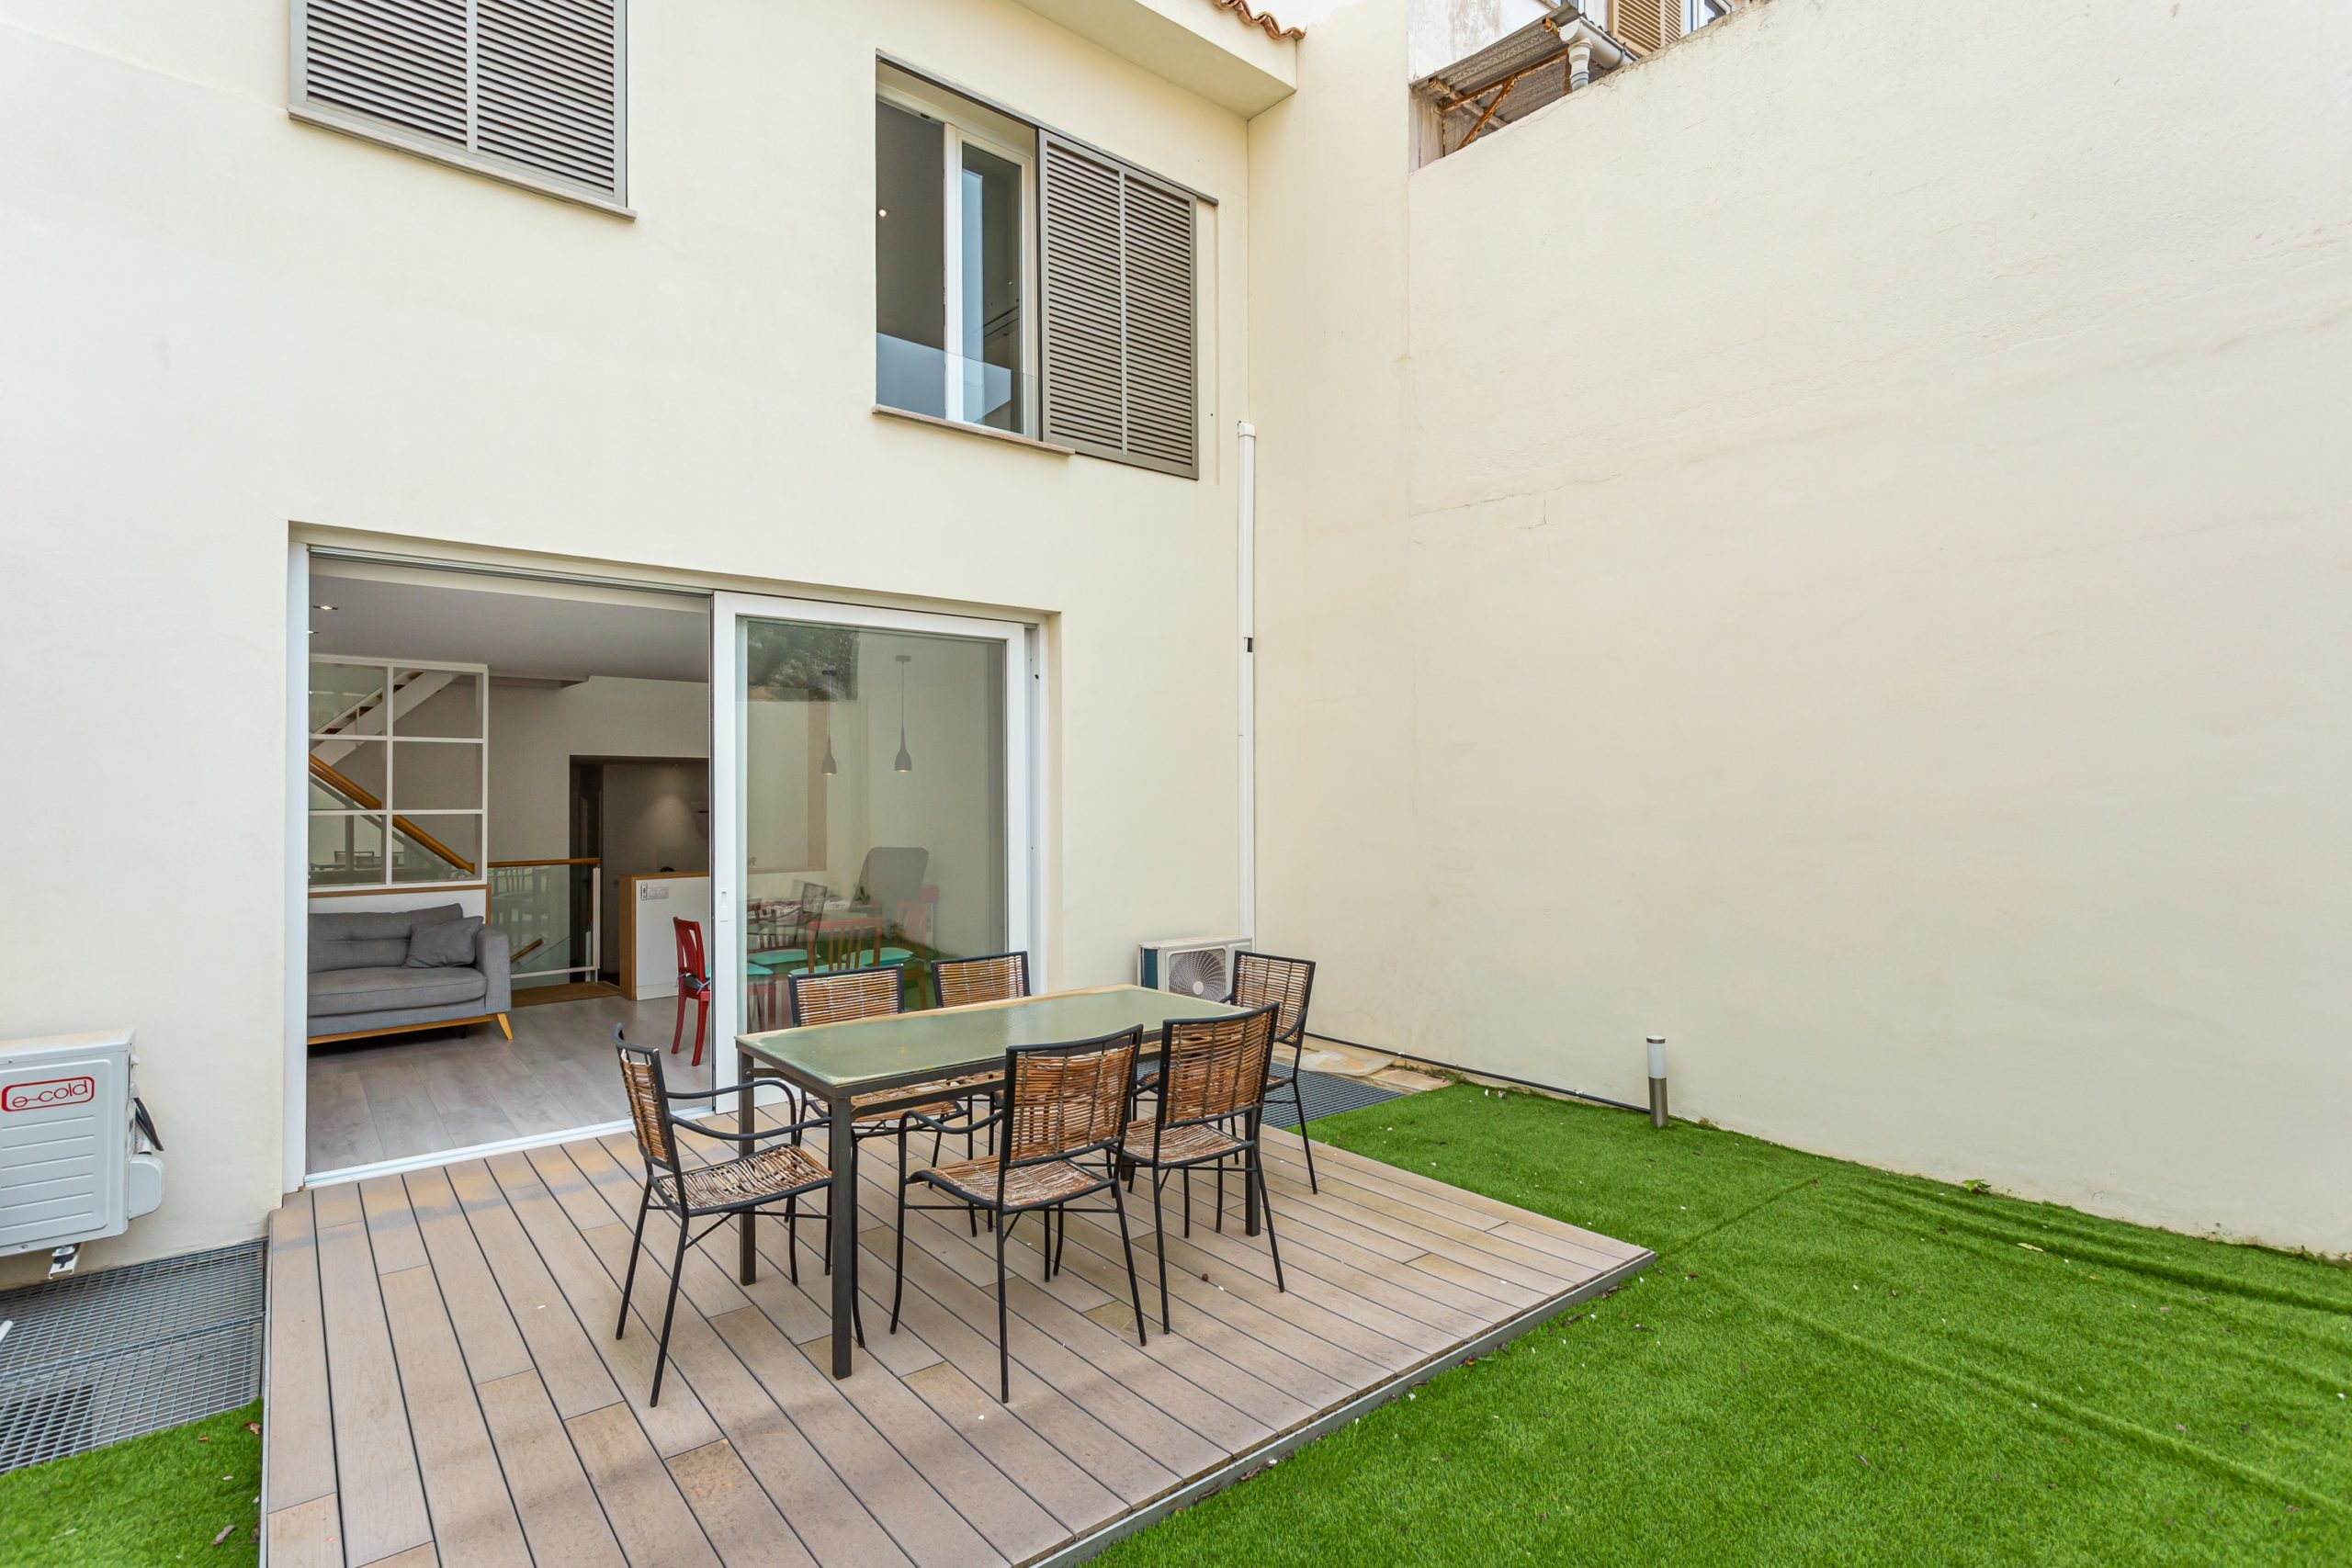 Palma - Newly built Semi-detached house